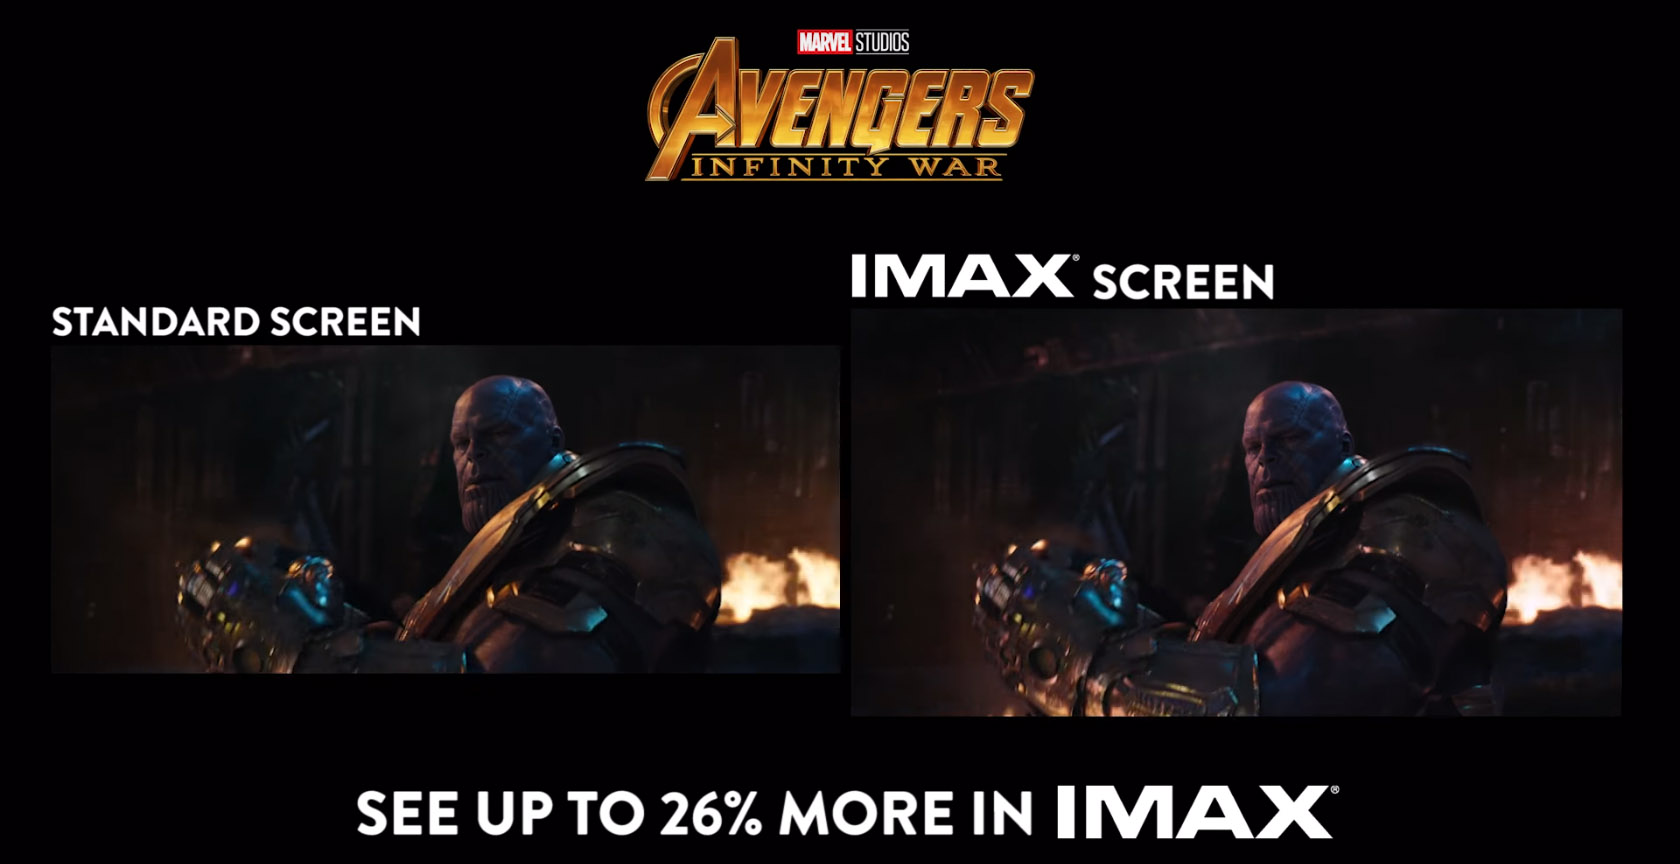 avengers imax side-by-side comparison